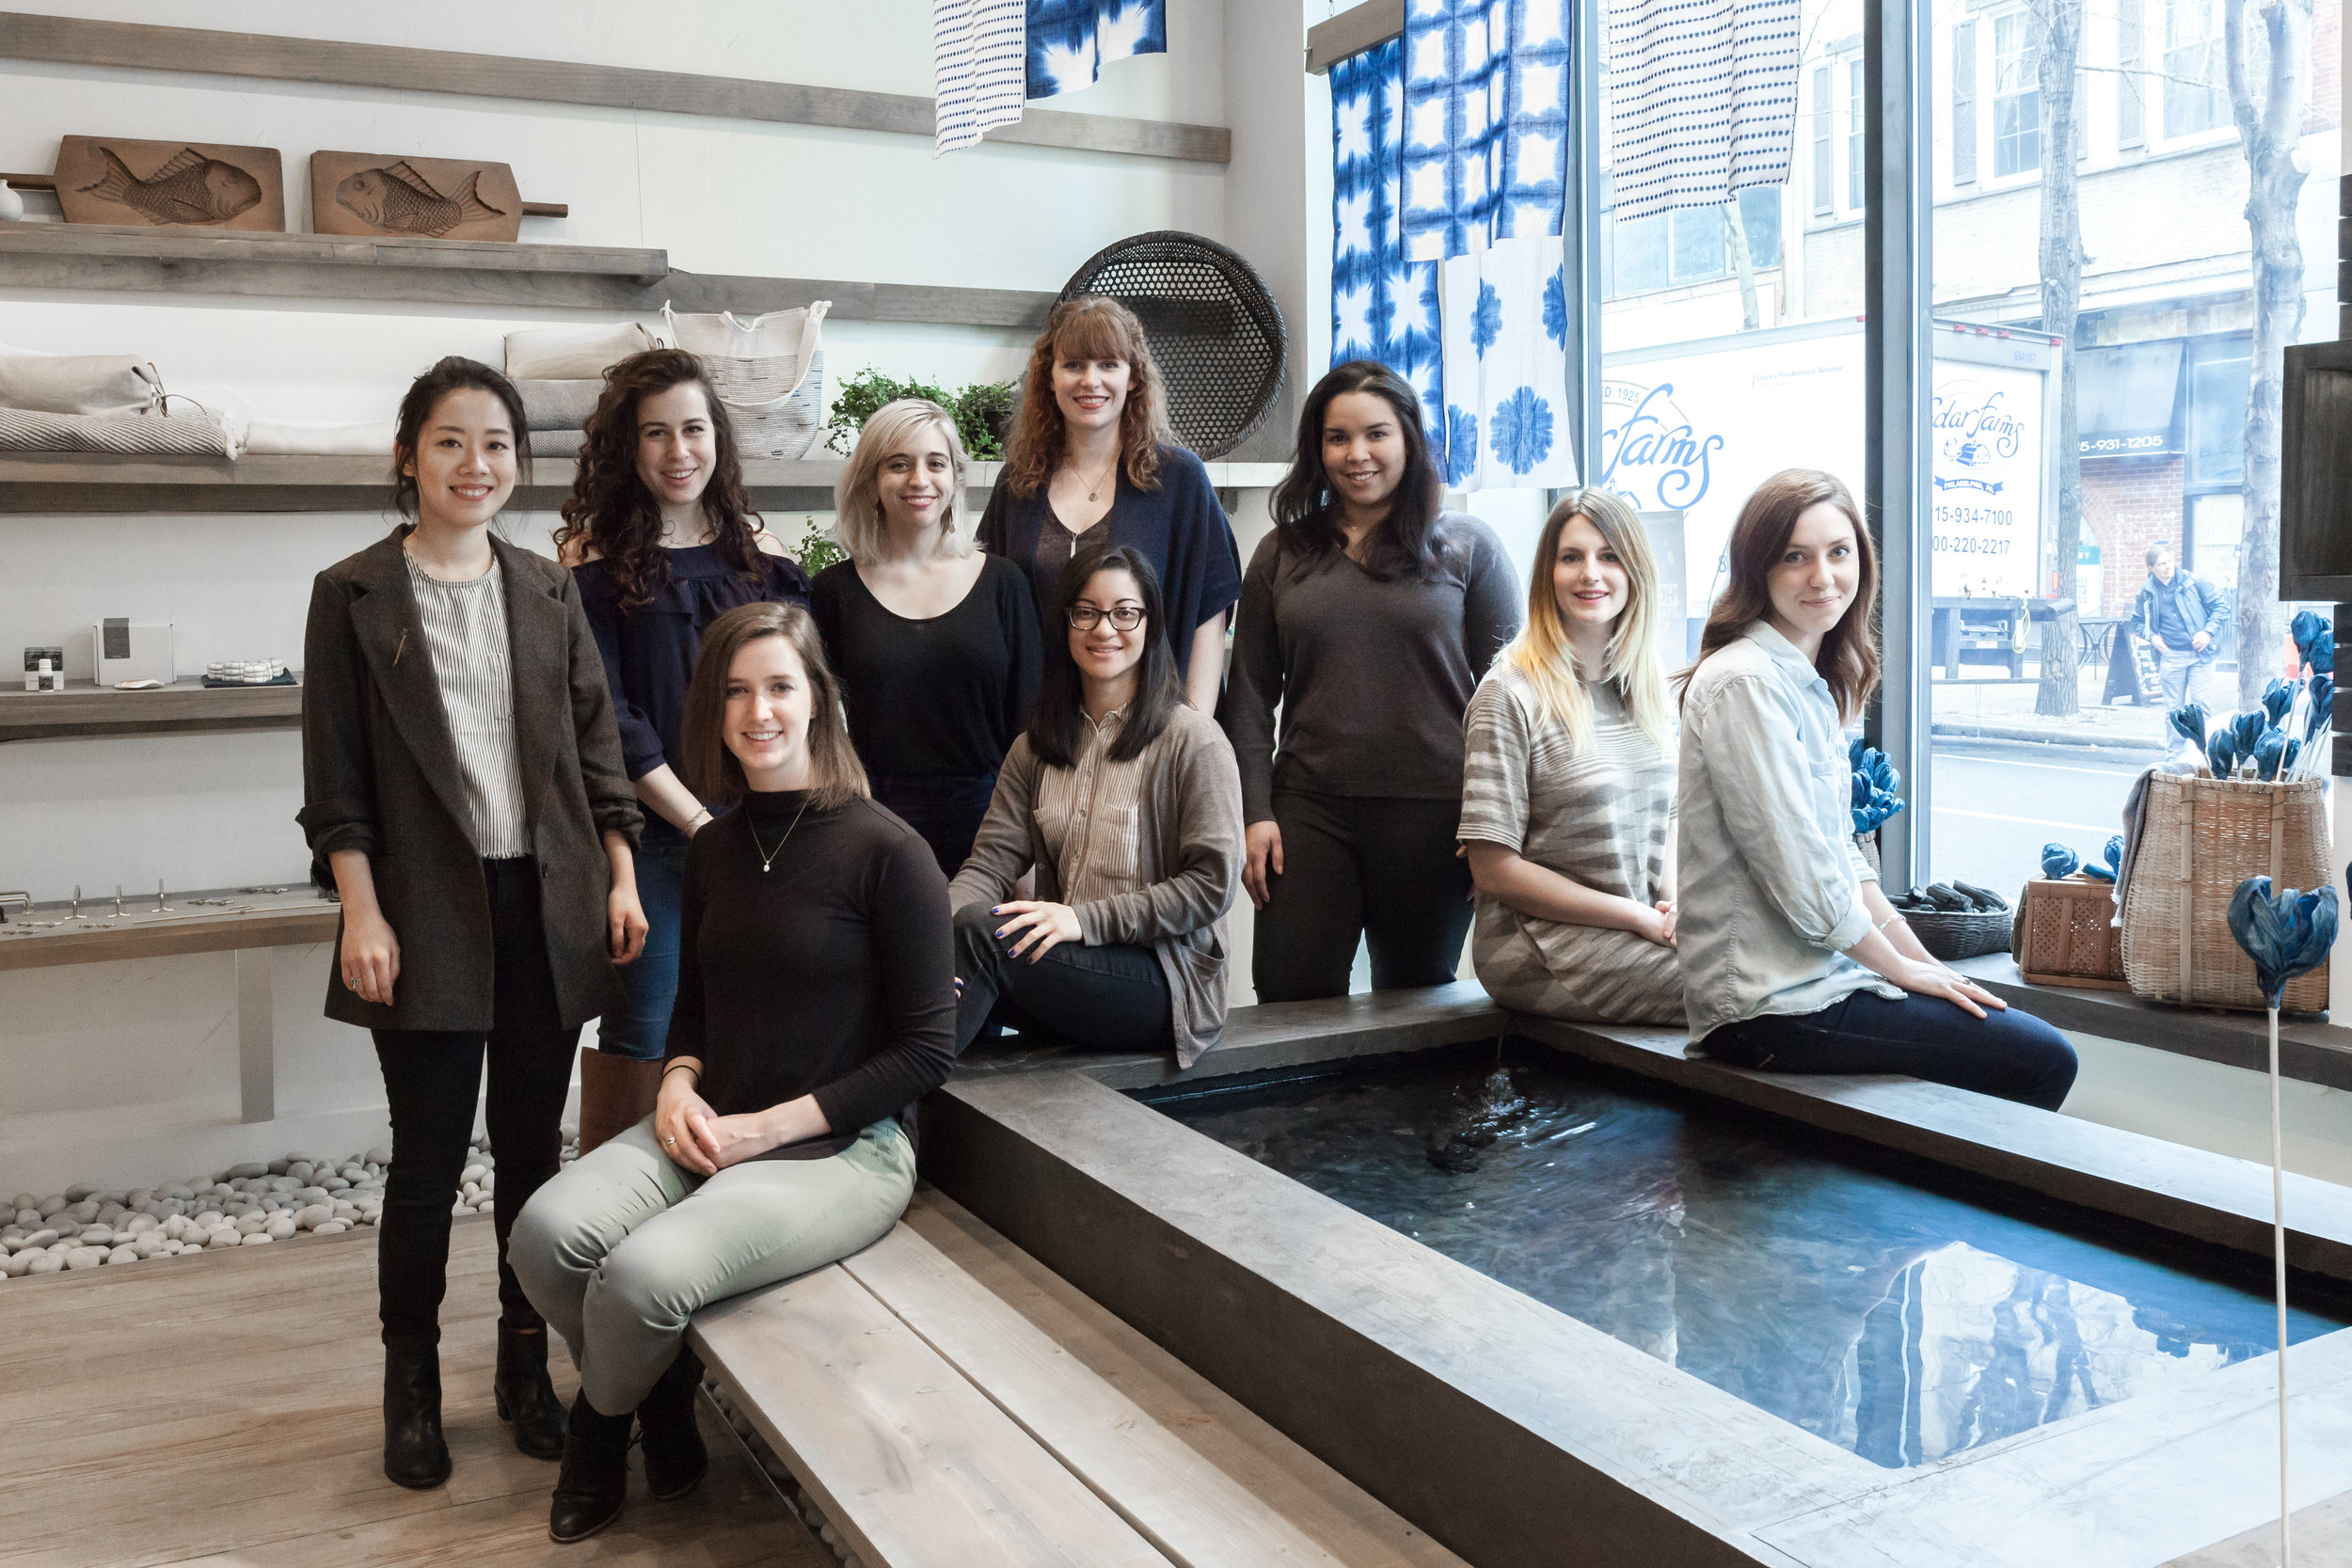 The women of Rikumo, pictured from left:Jenny, Kacey, Rosemary, Magali, Dani Jo, Mary, Coral,   Sarah   and Caitlin.